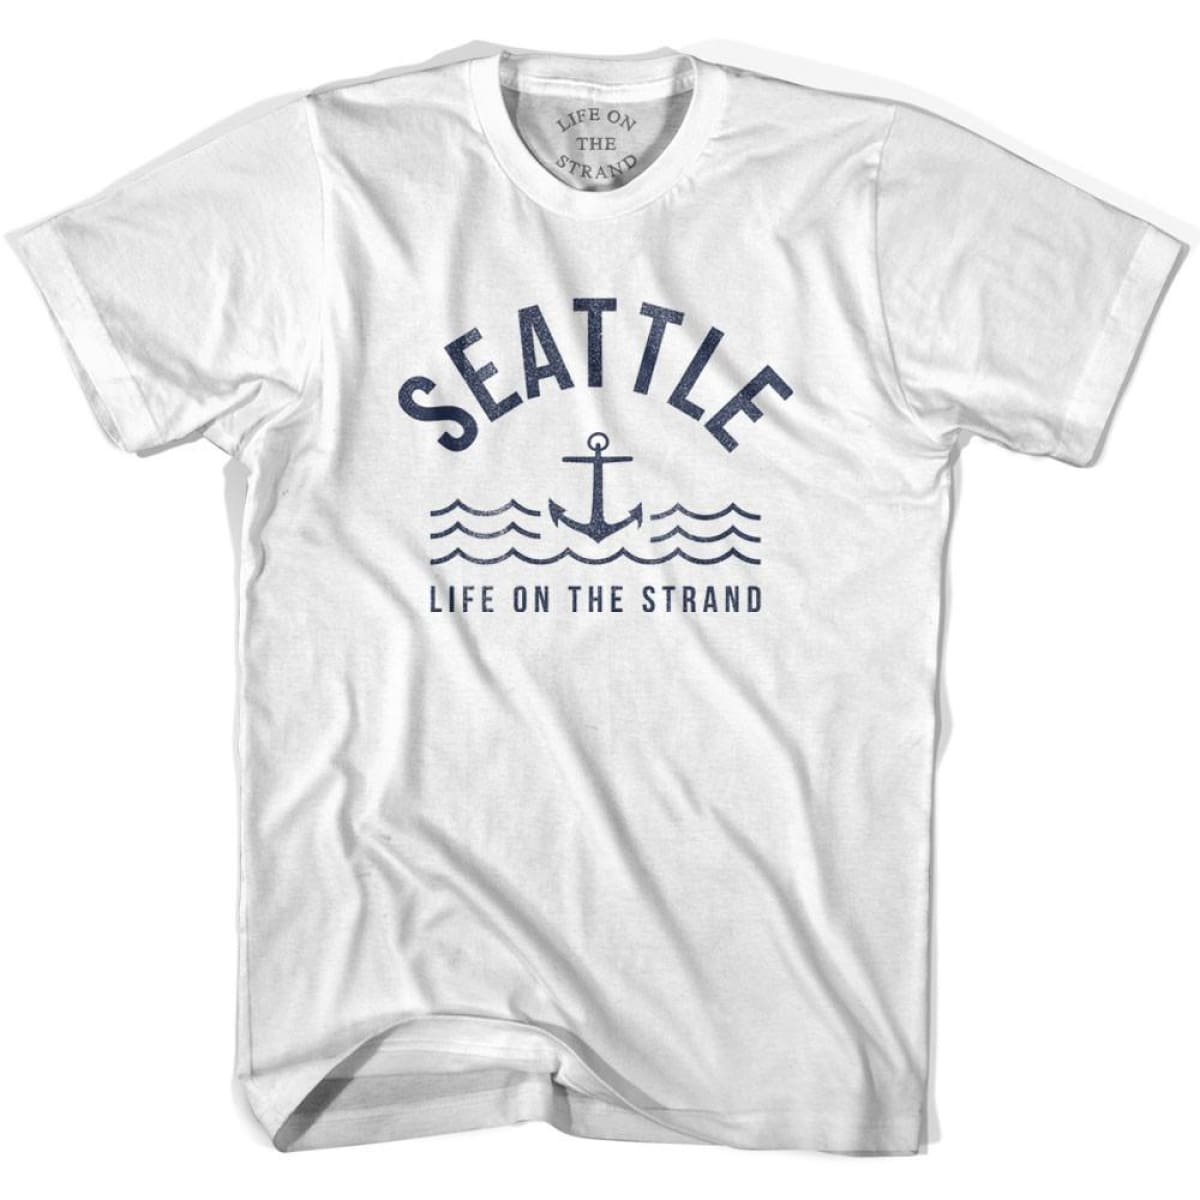 Seattle Anchor Life on the Strand T-shirt - White / Youth X-Small - Life on the Strand Anchor